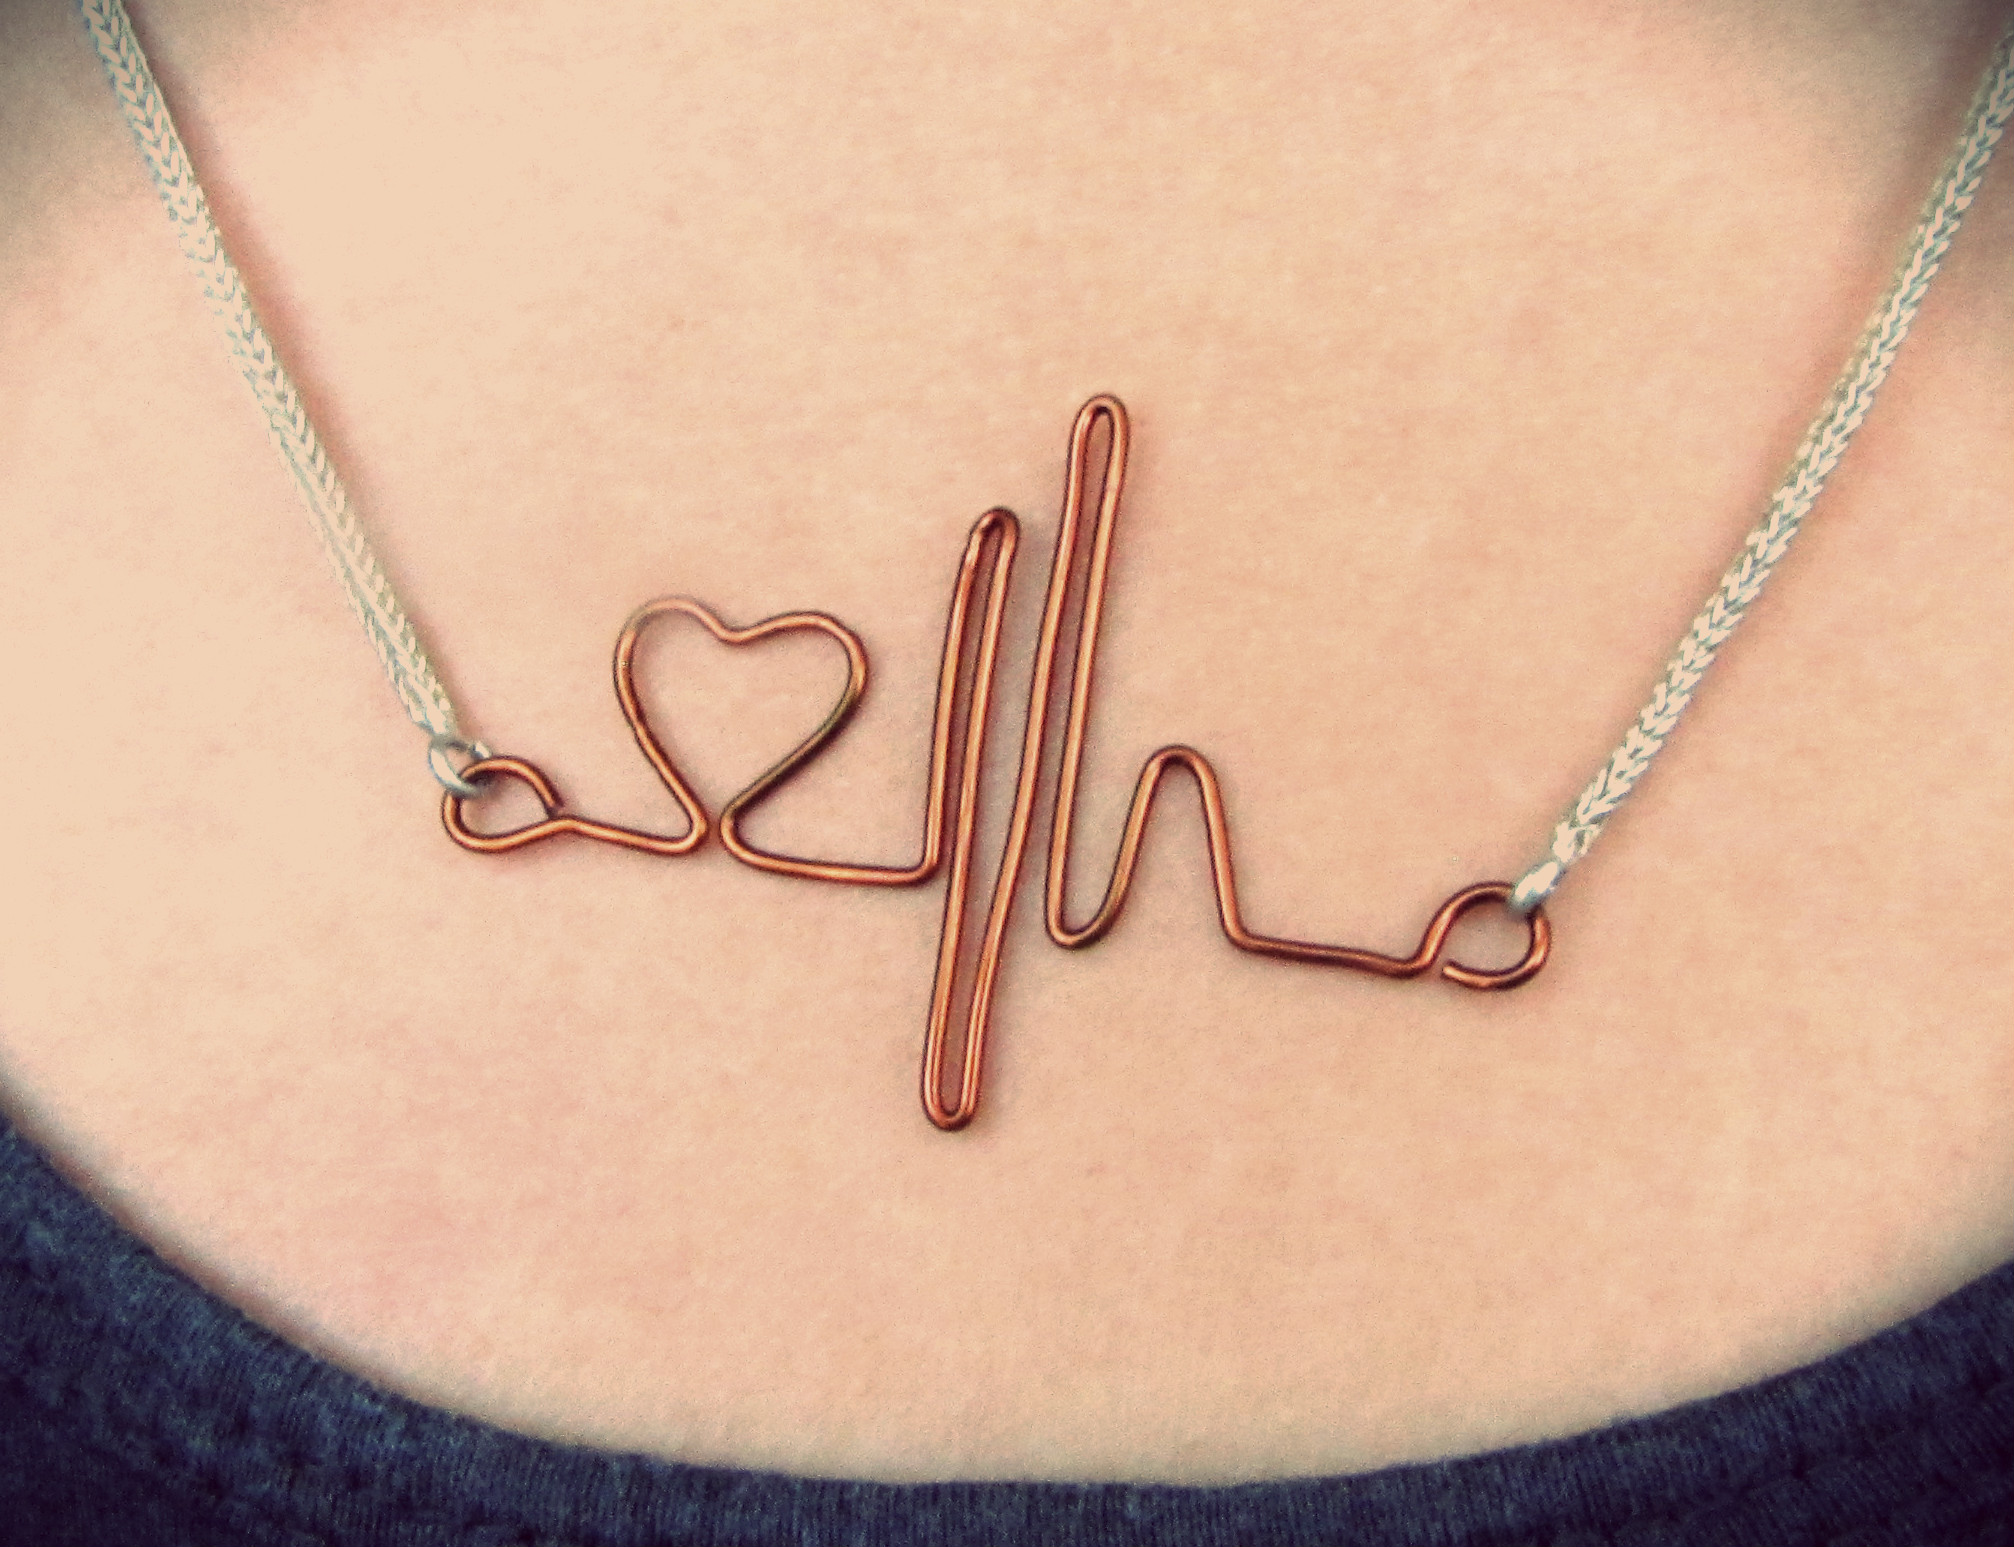 Heartbeat Necklace For Your Valentine